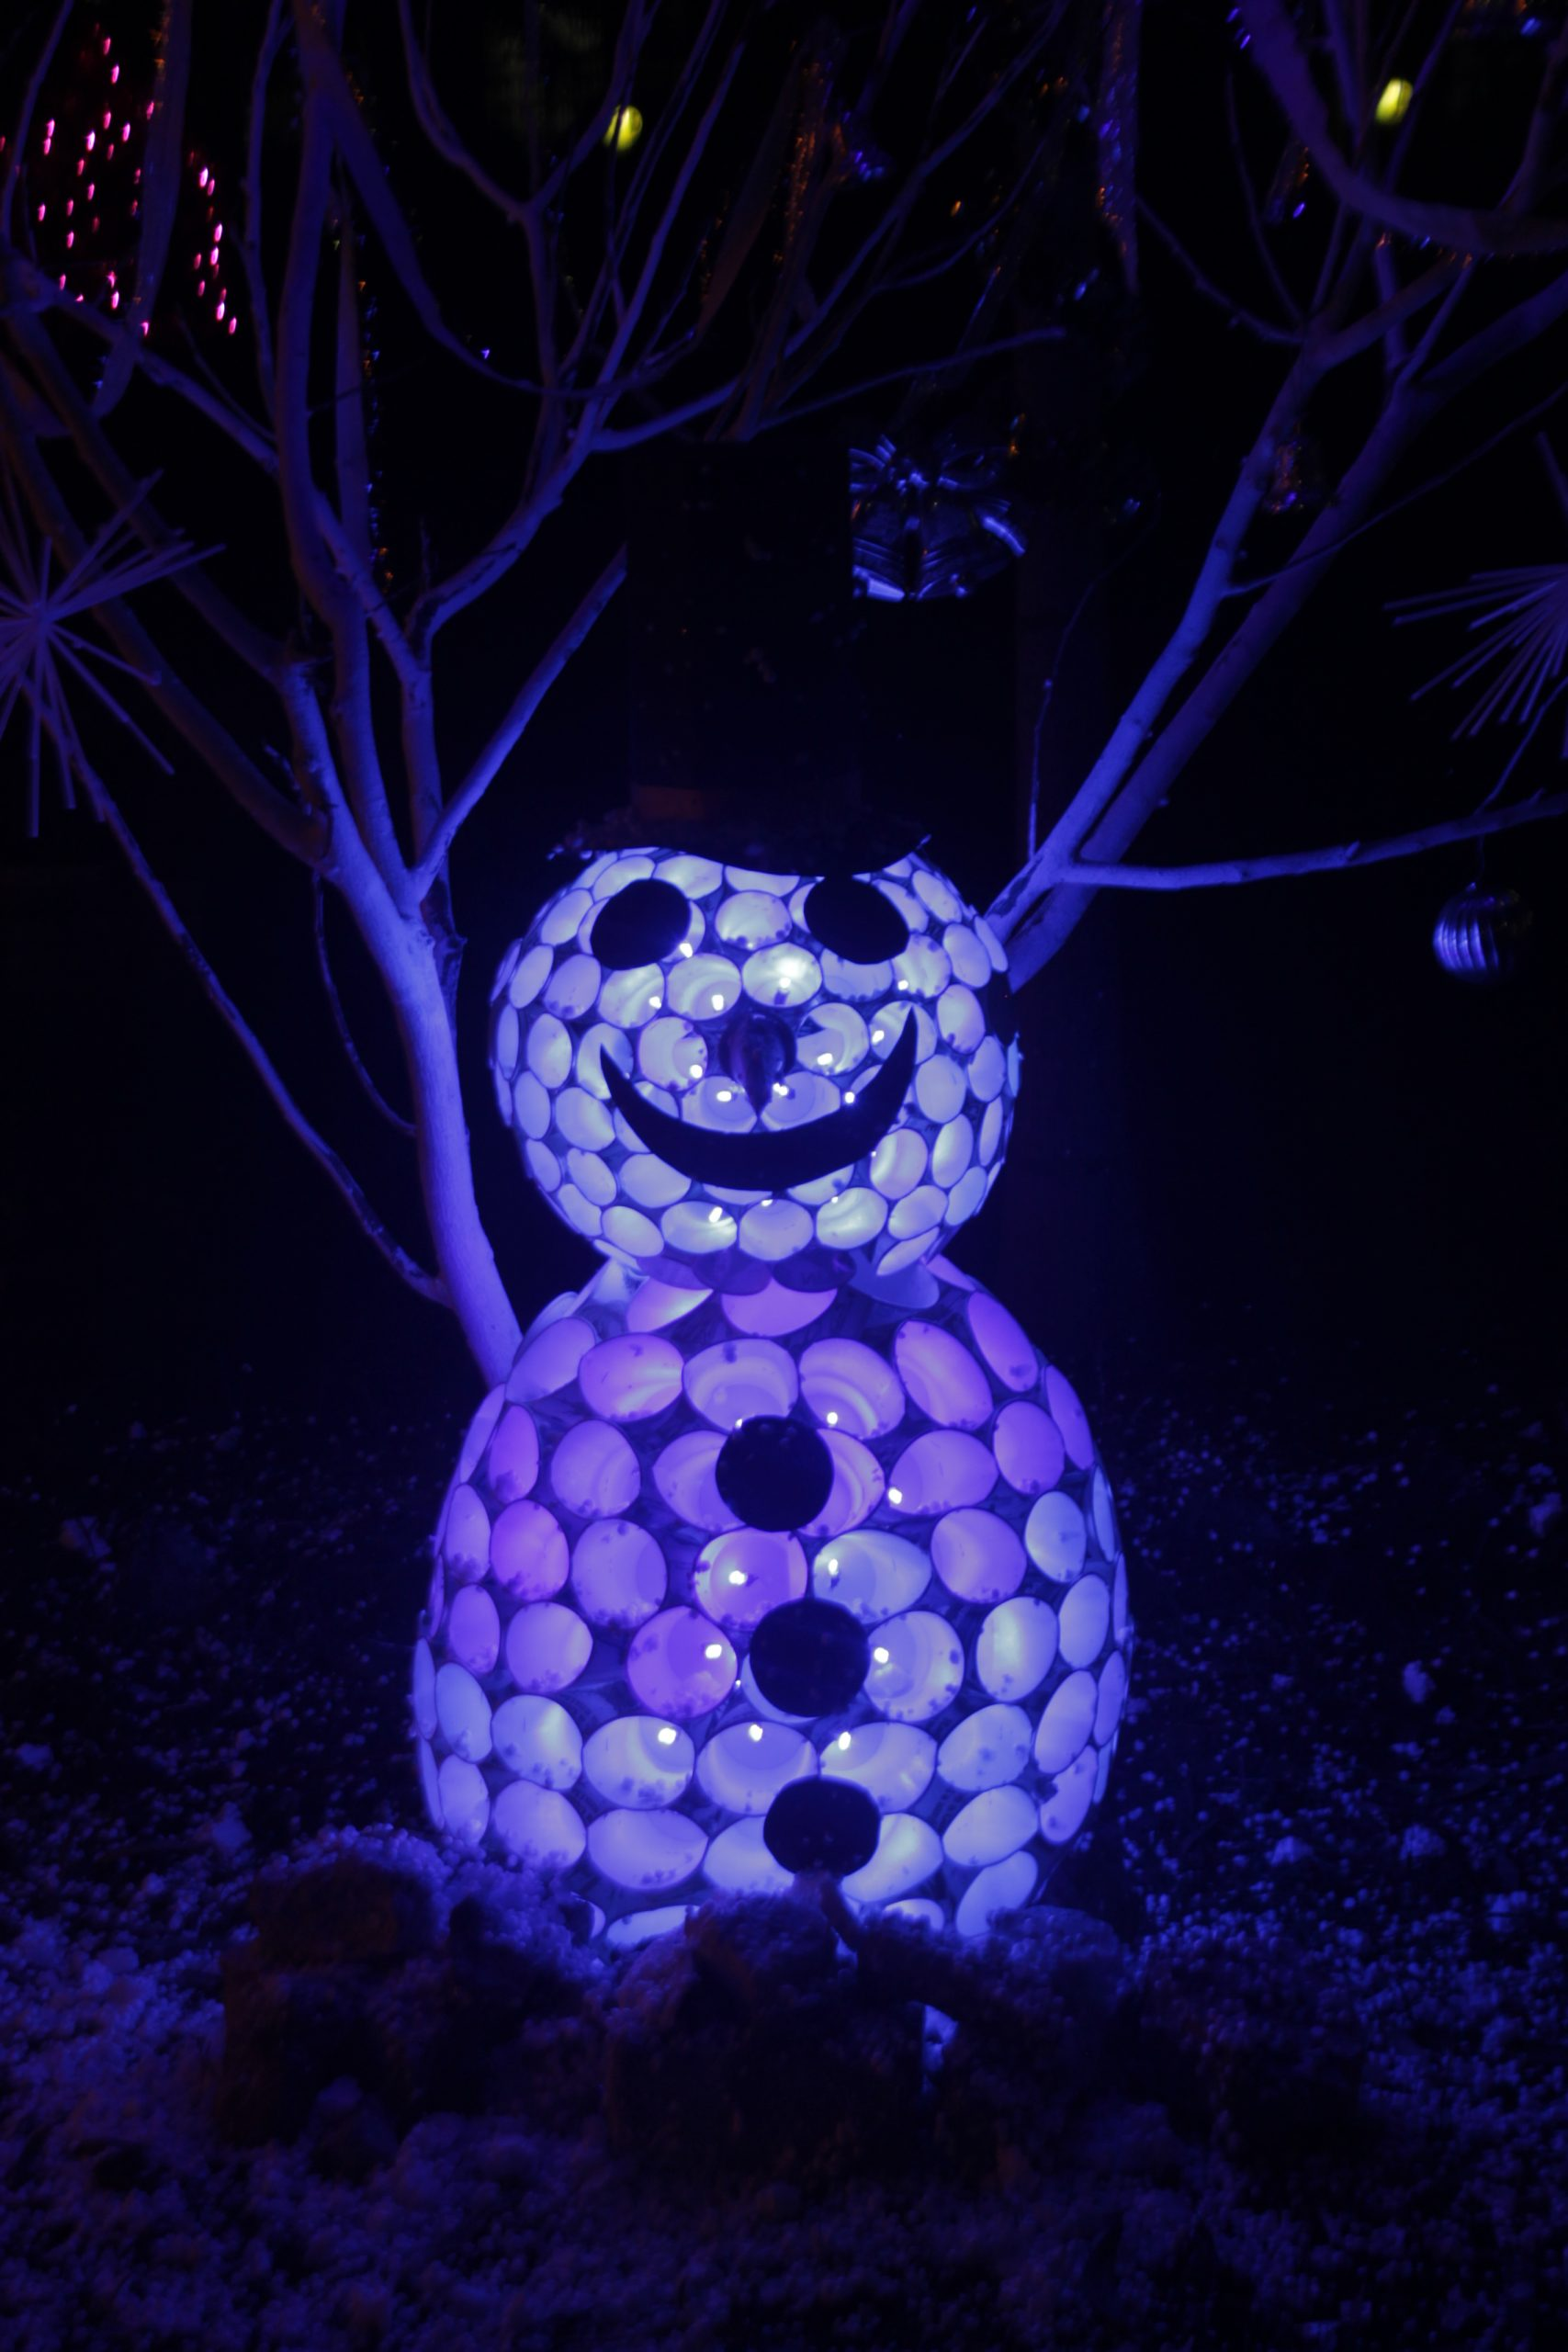 Snowman with lighting